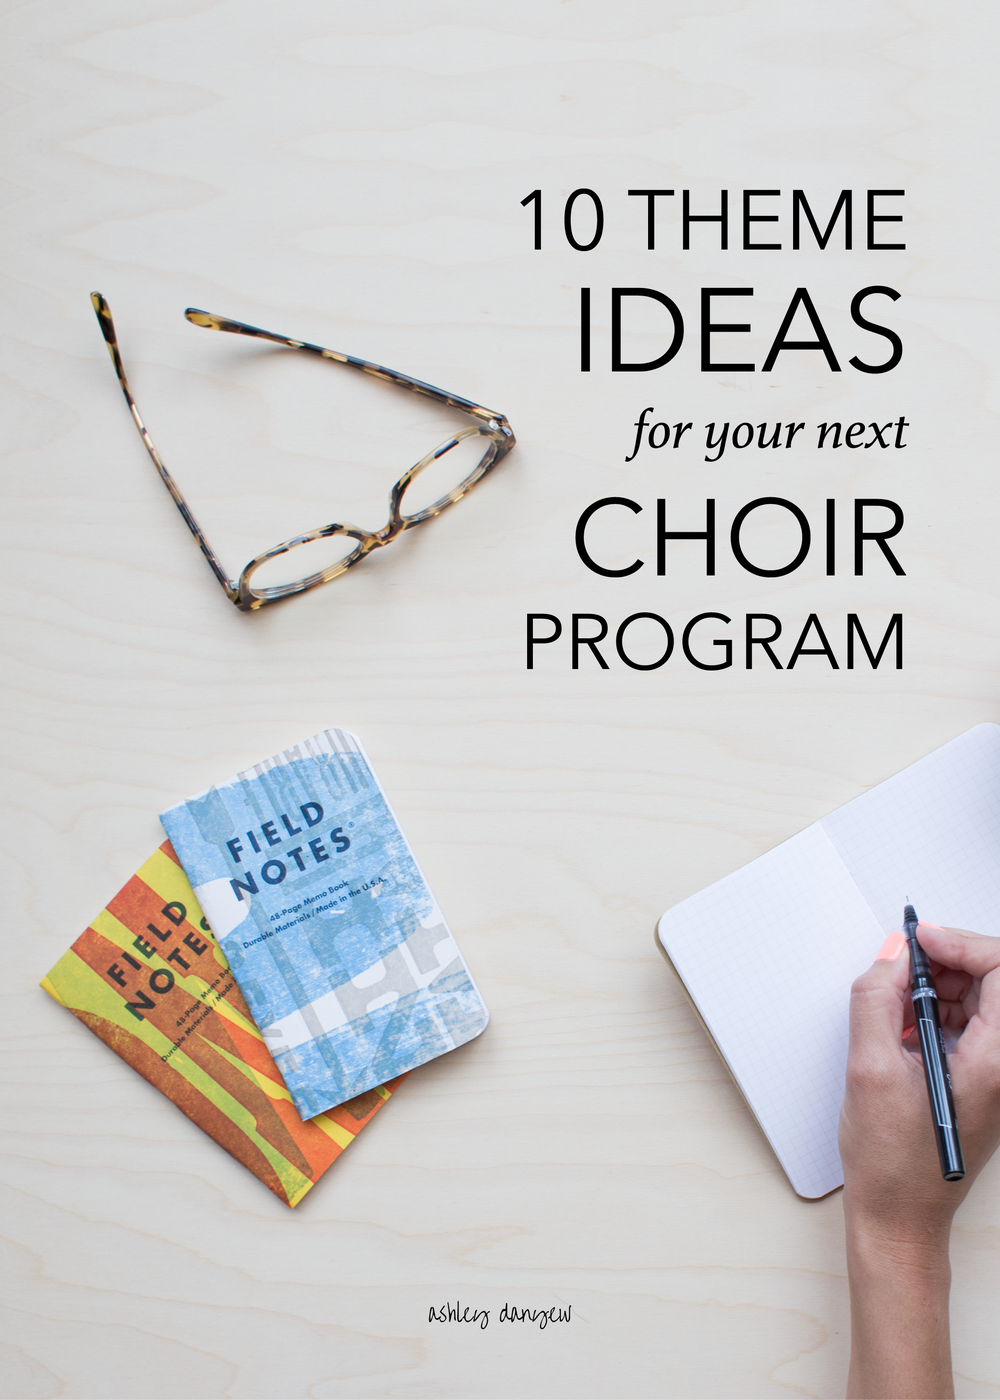 10-Theme-Ideas-For-Your-Next-Choir-Program-01.png